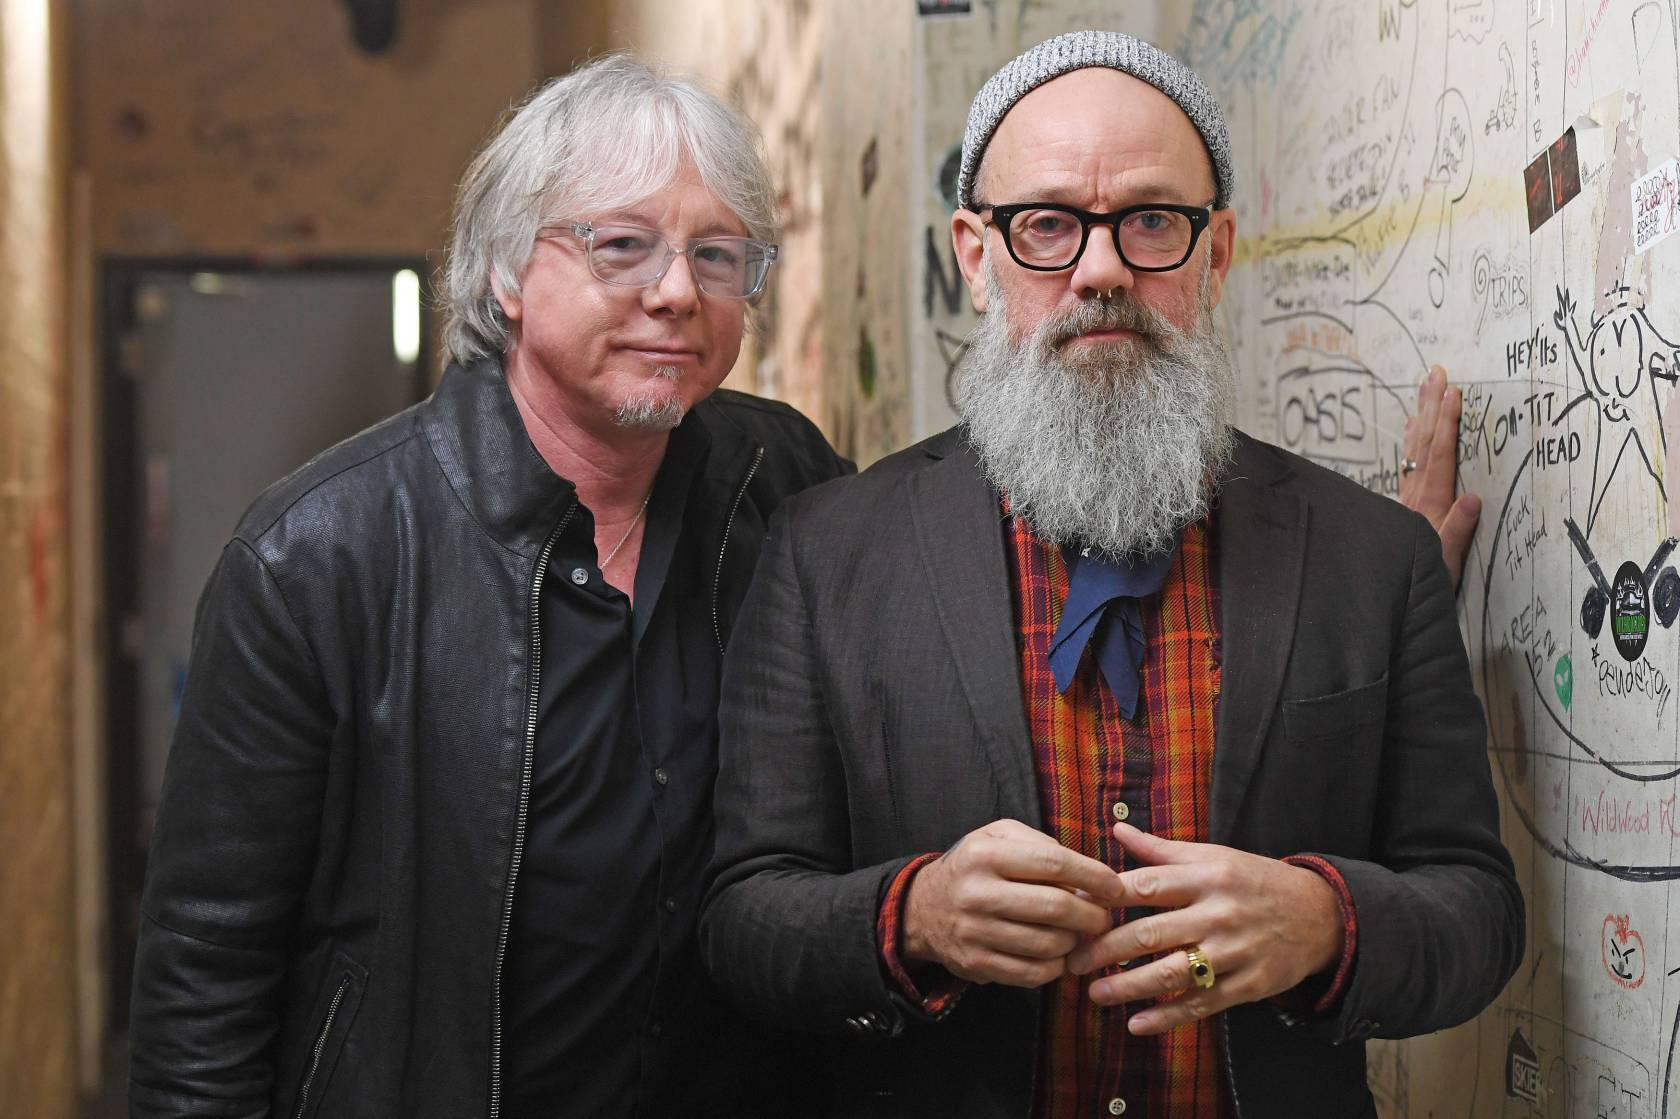 Mike Mills (left) and Michael Stipe of R.E.M pose following a Q&A at The Borderline in Soho, London, as they celebrate the 25th anniversary of their landmark album Out of Time.